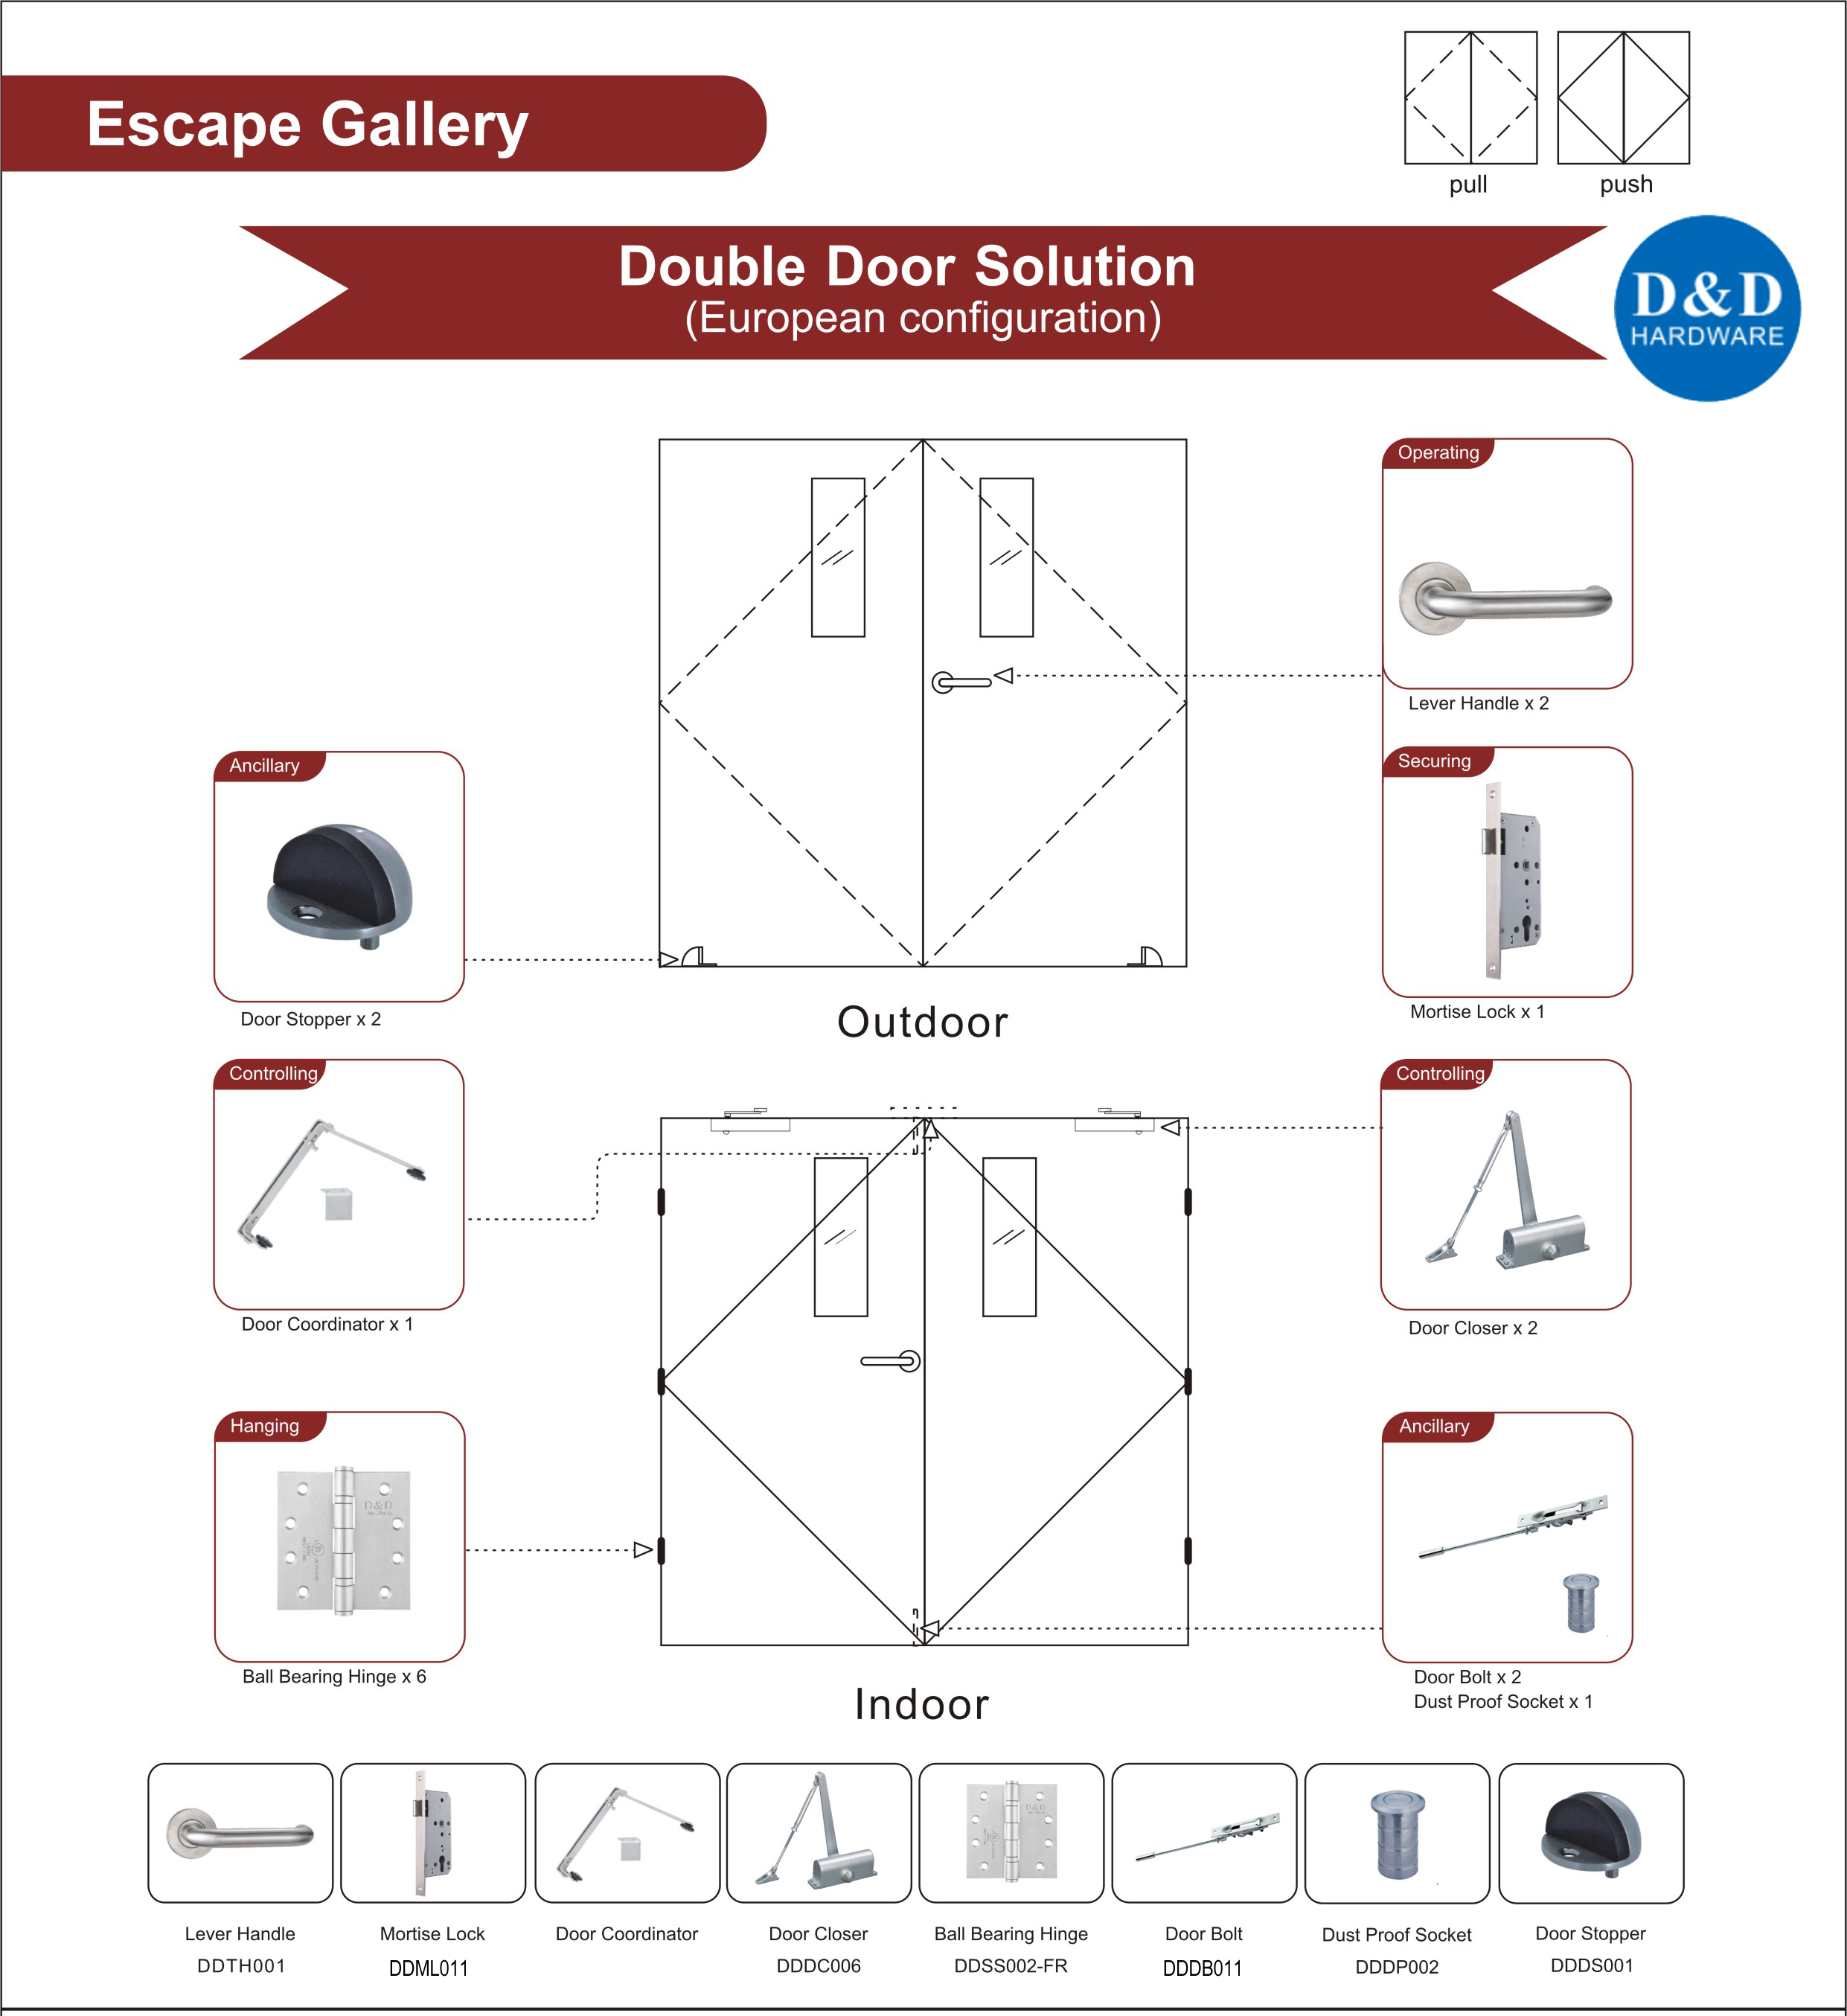 Fire Rated Steel Sound Insulation Door Hardware for Escape Gallery Double Door